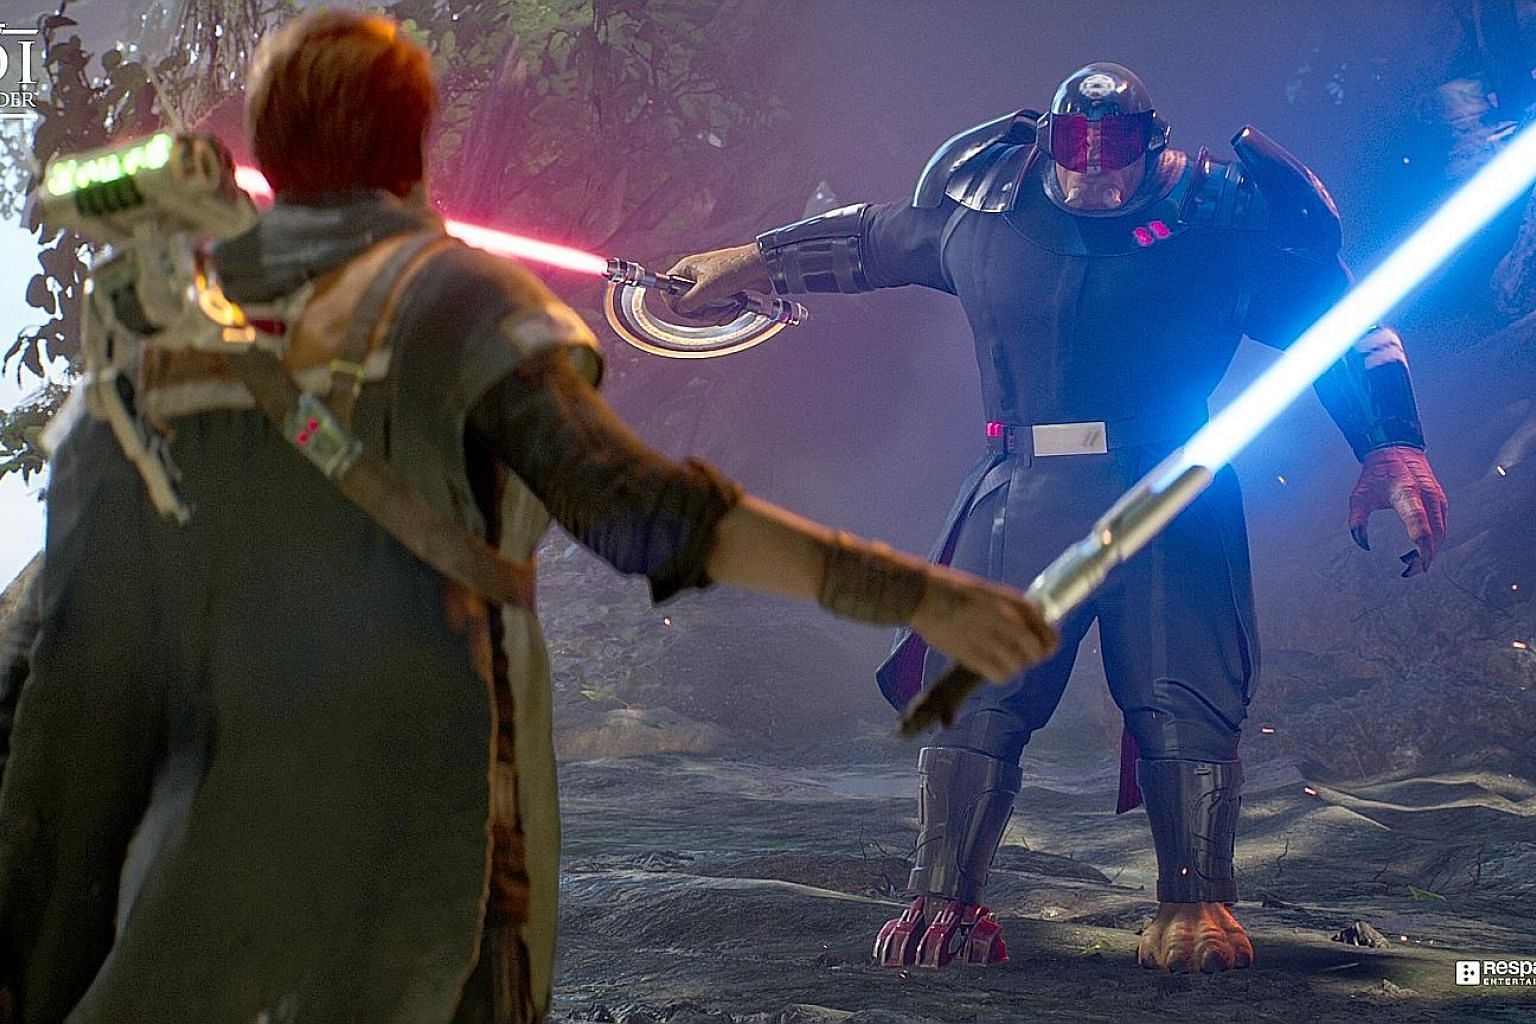 Star Wars Jedi: Fallen Order takes place after the Jedi are deemed as traitors of the Republic and are hunted down by government forces.